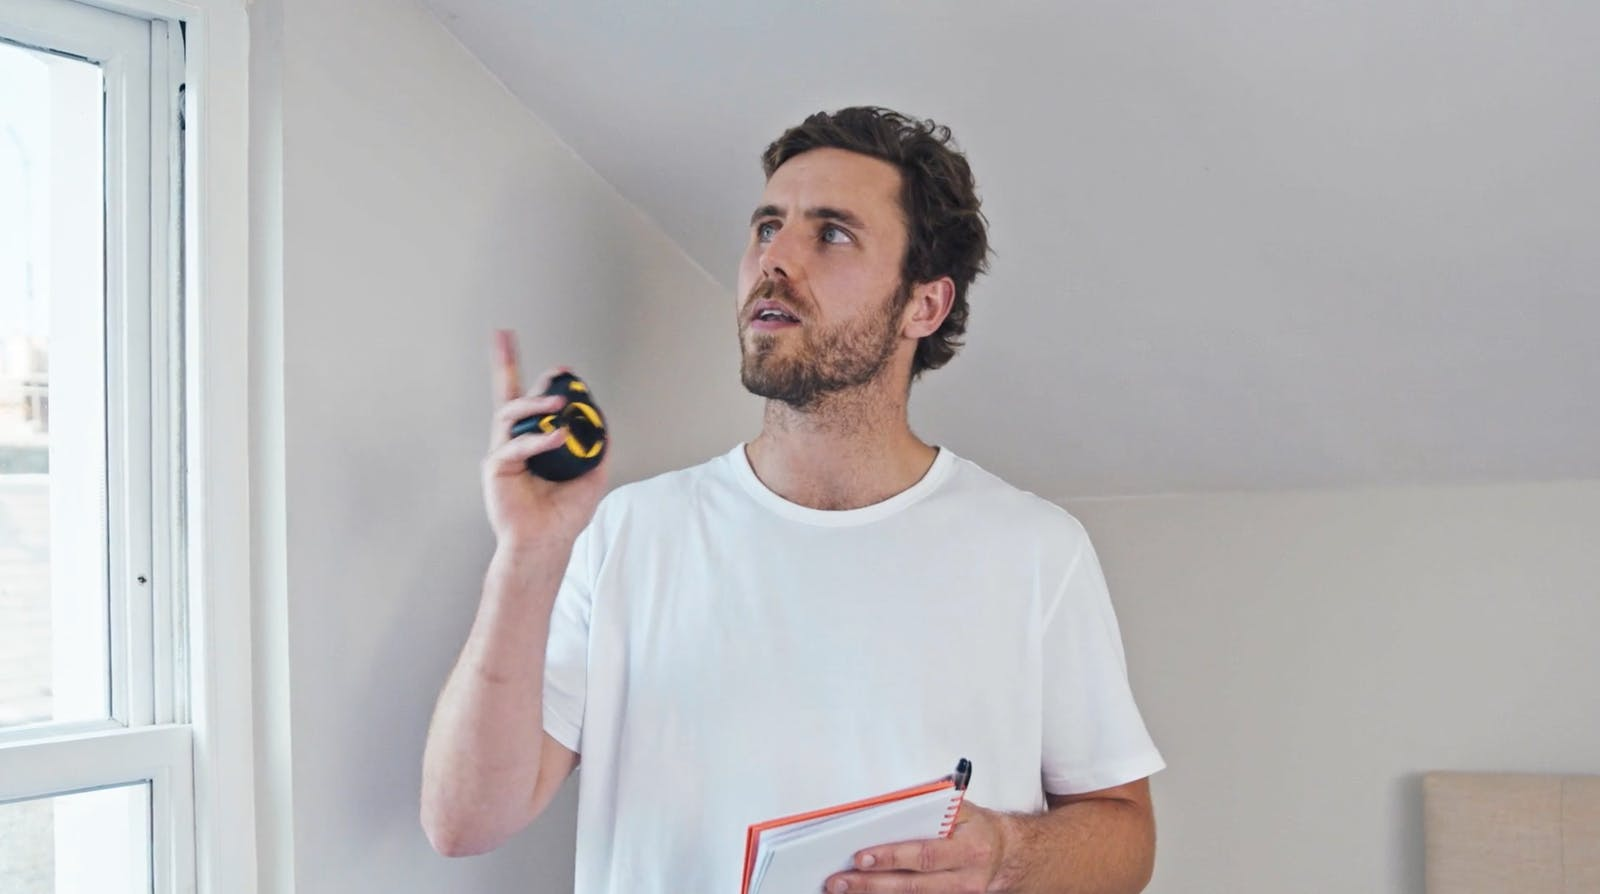 Man holding metal tape measure pointing to a window